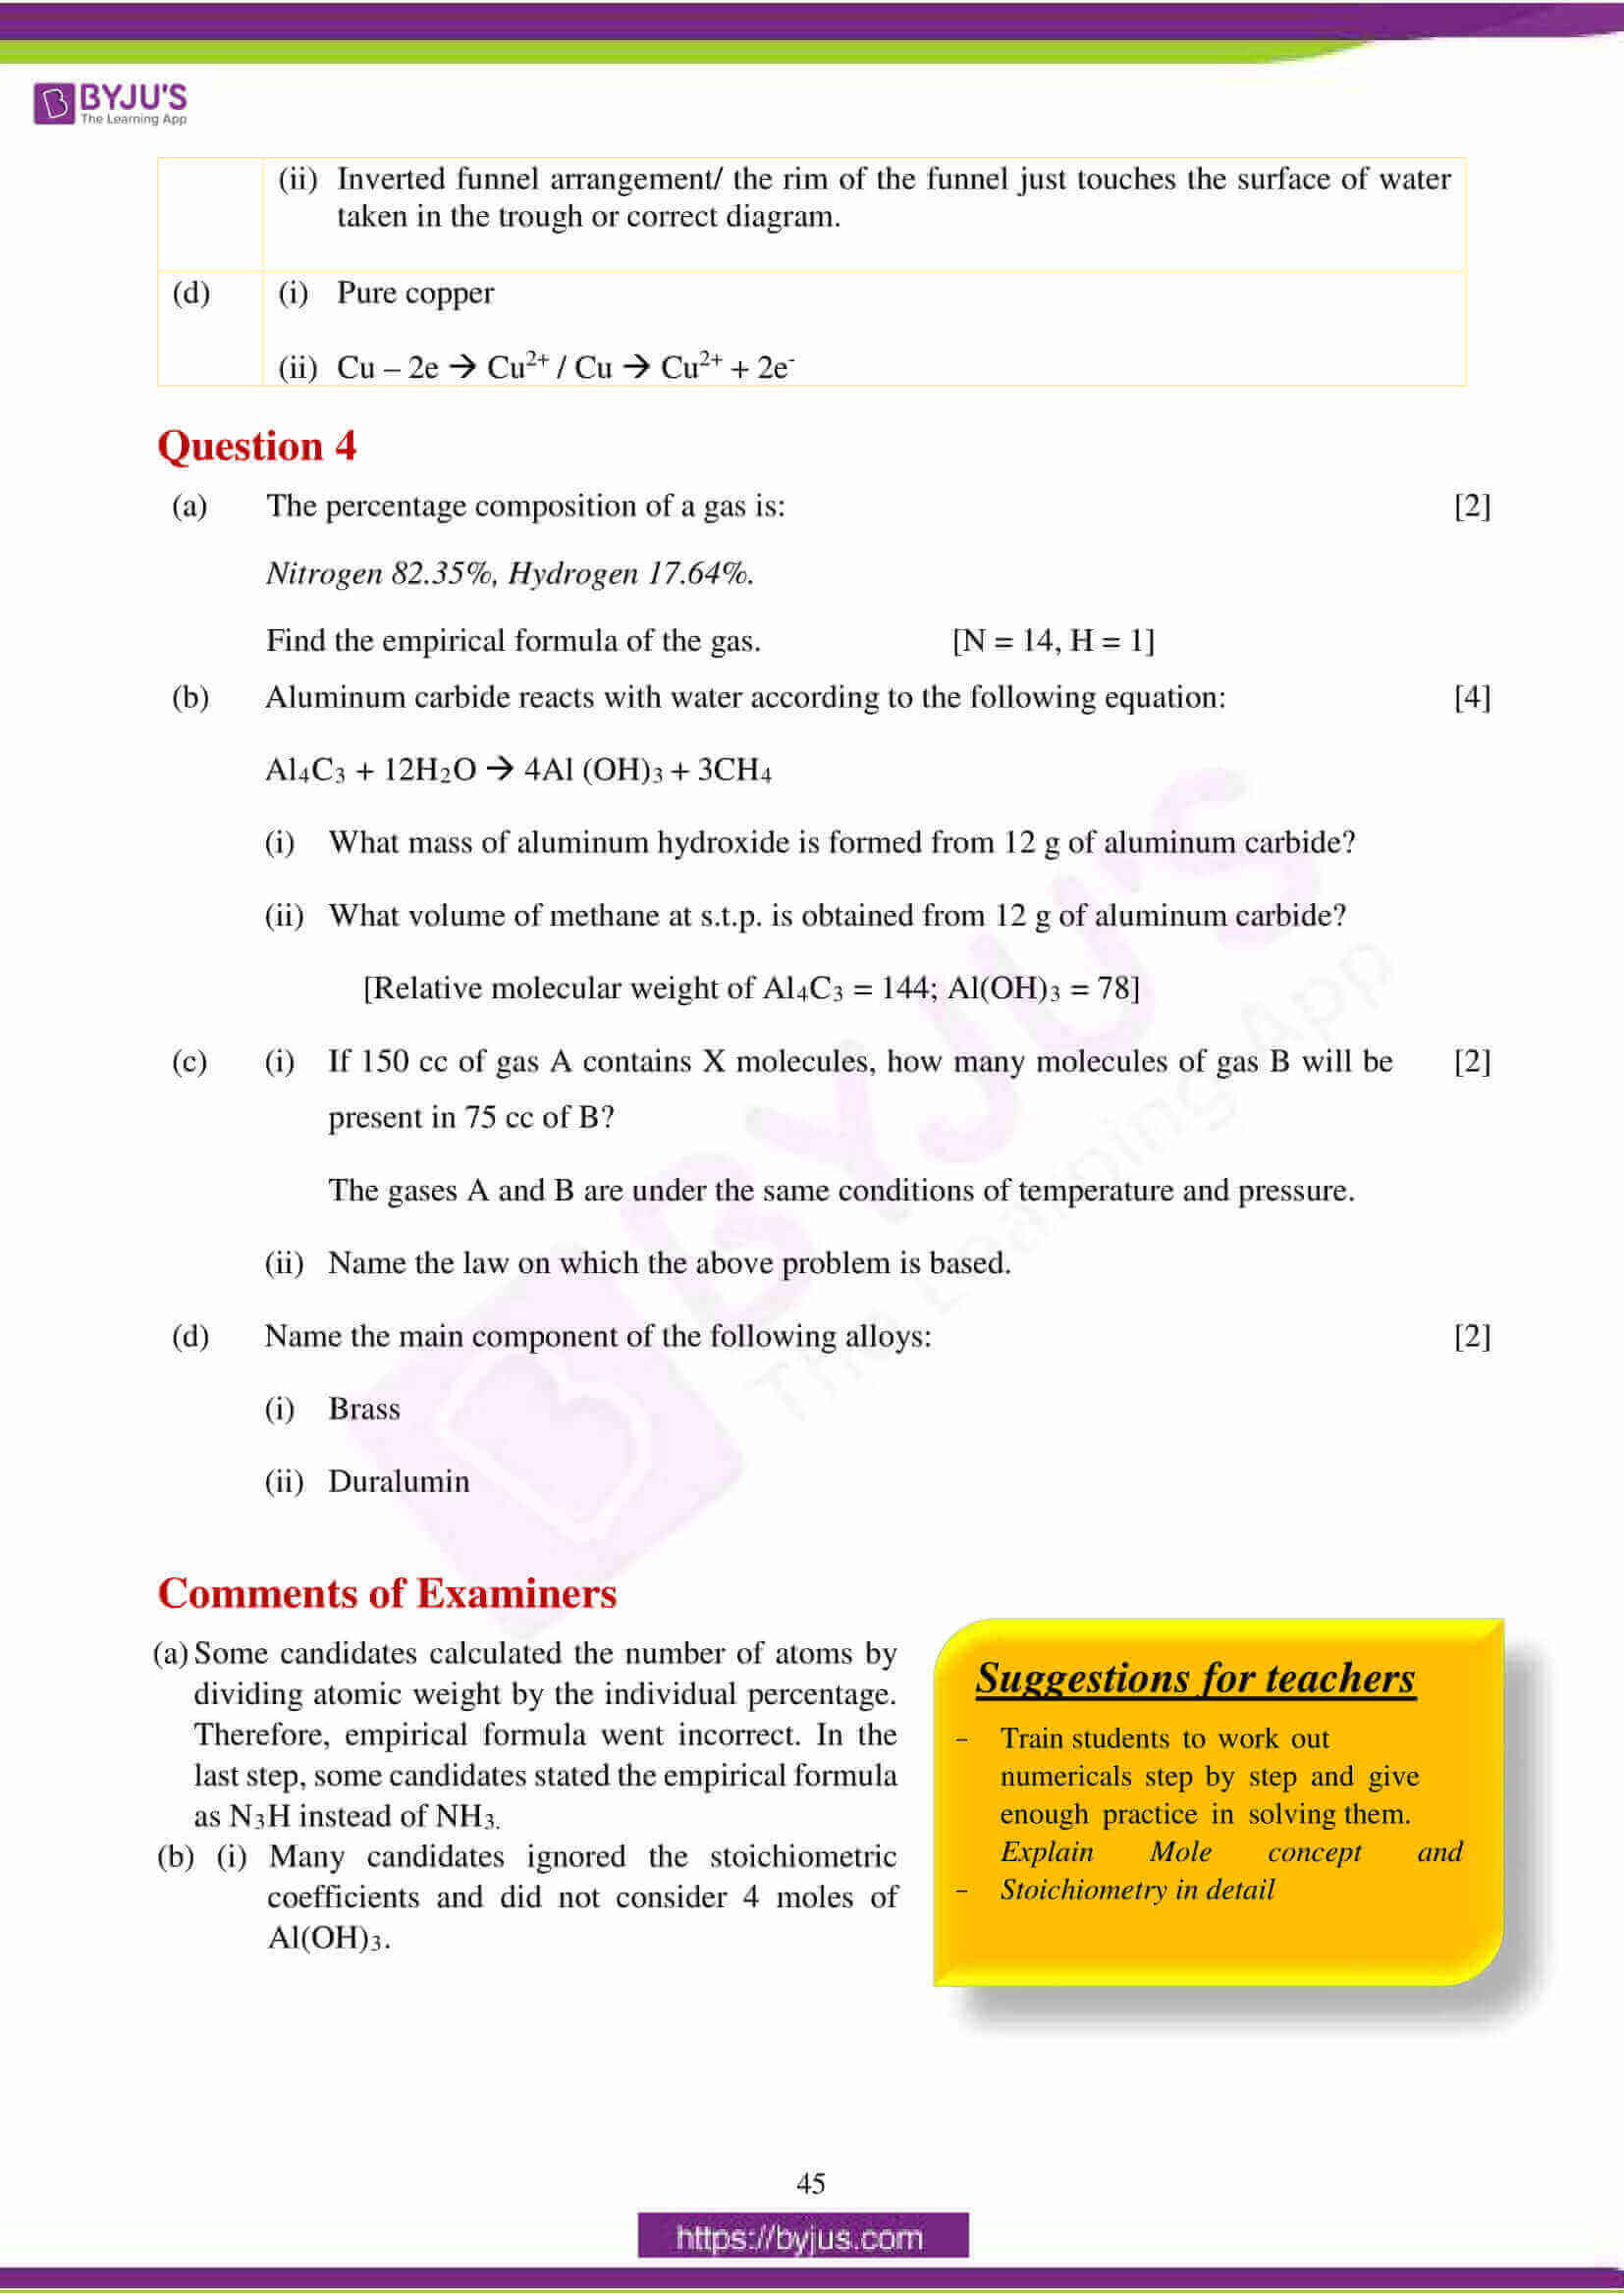 icse class 10 chemistry question paper solution 2018 12